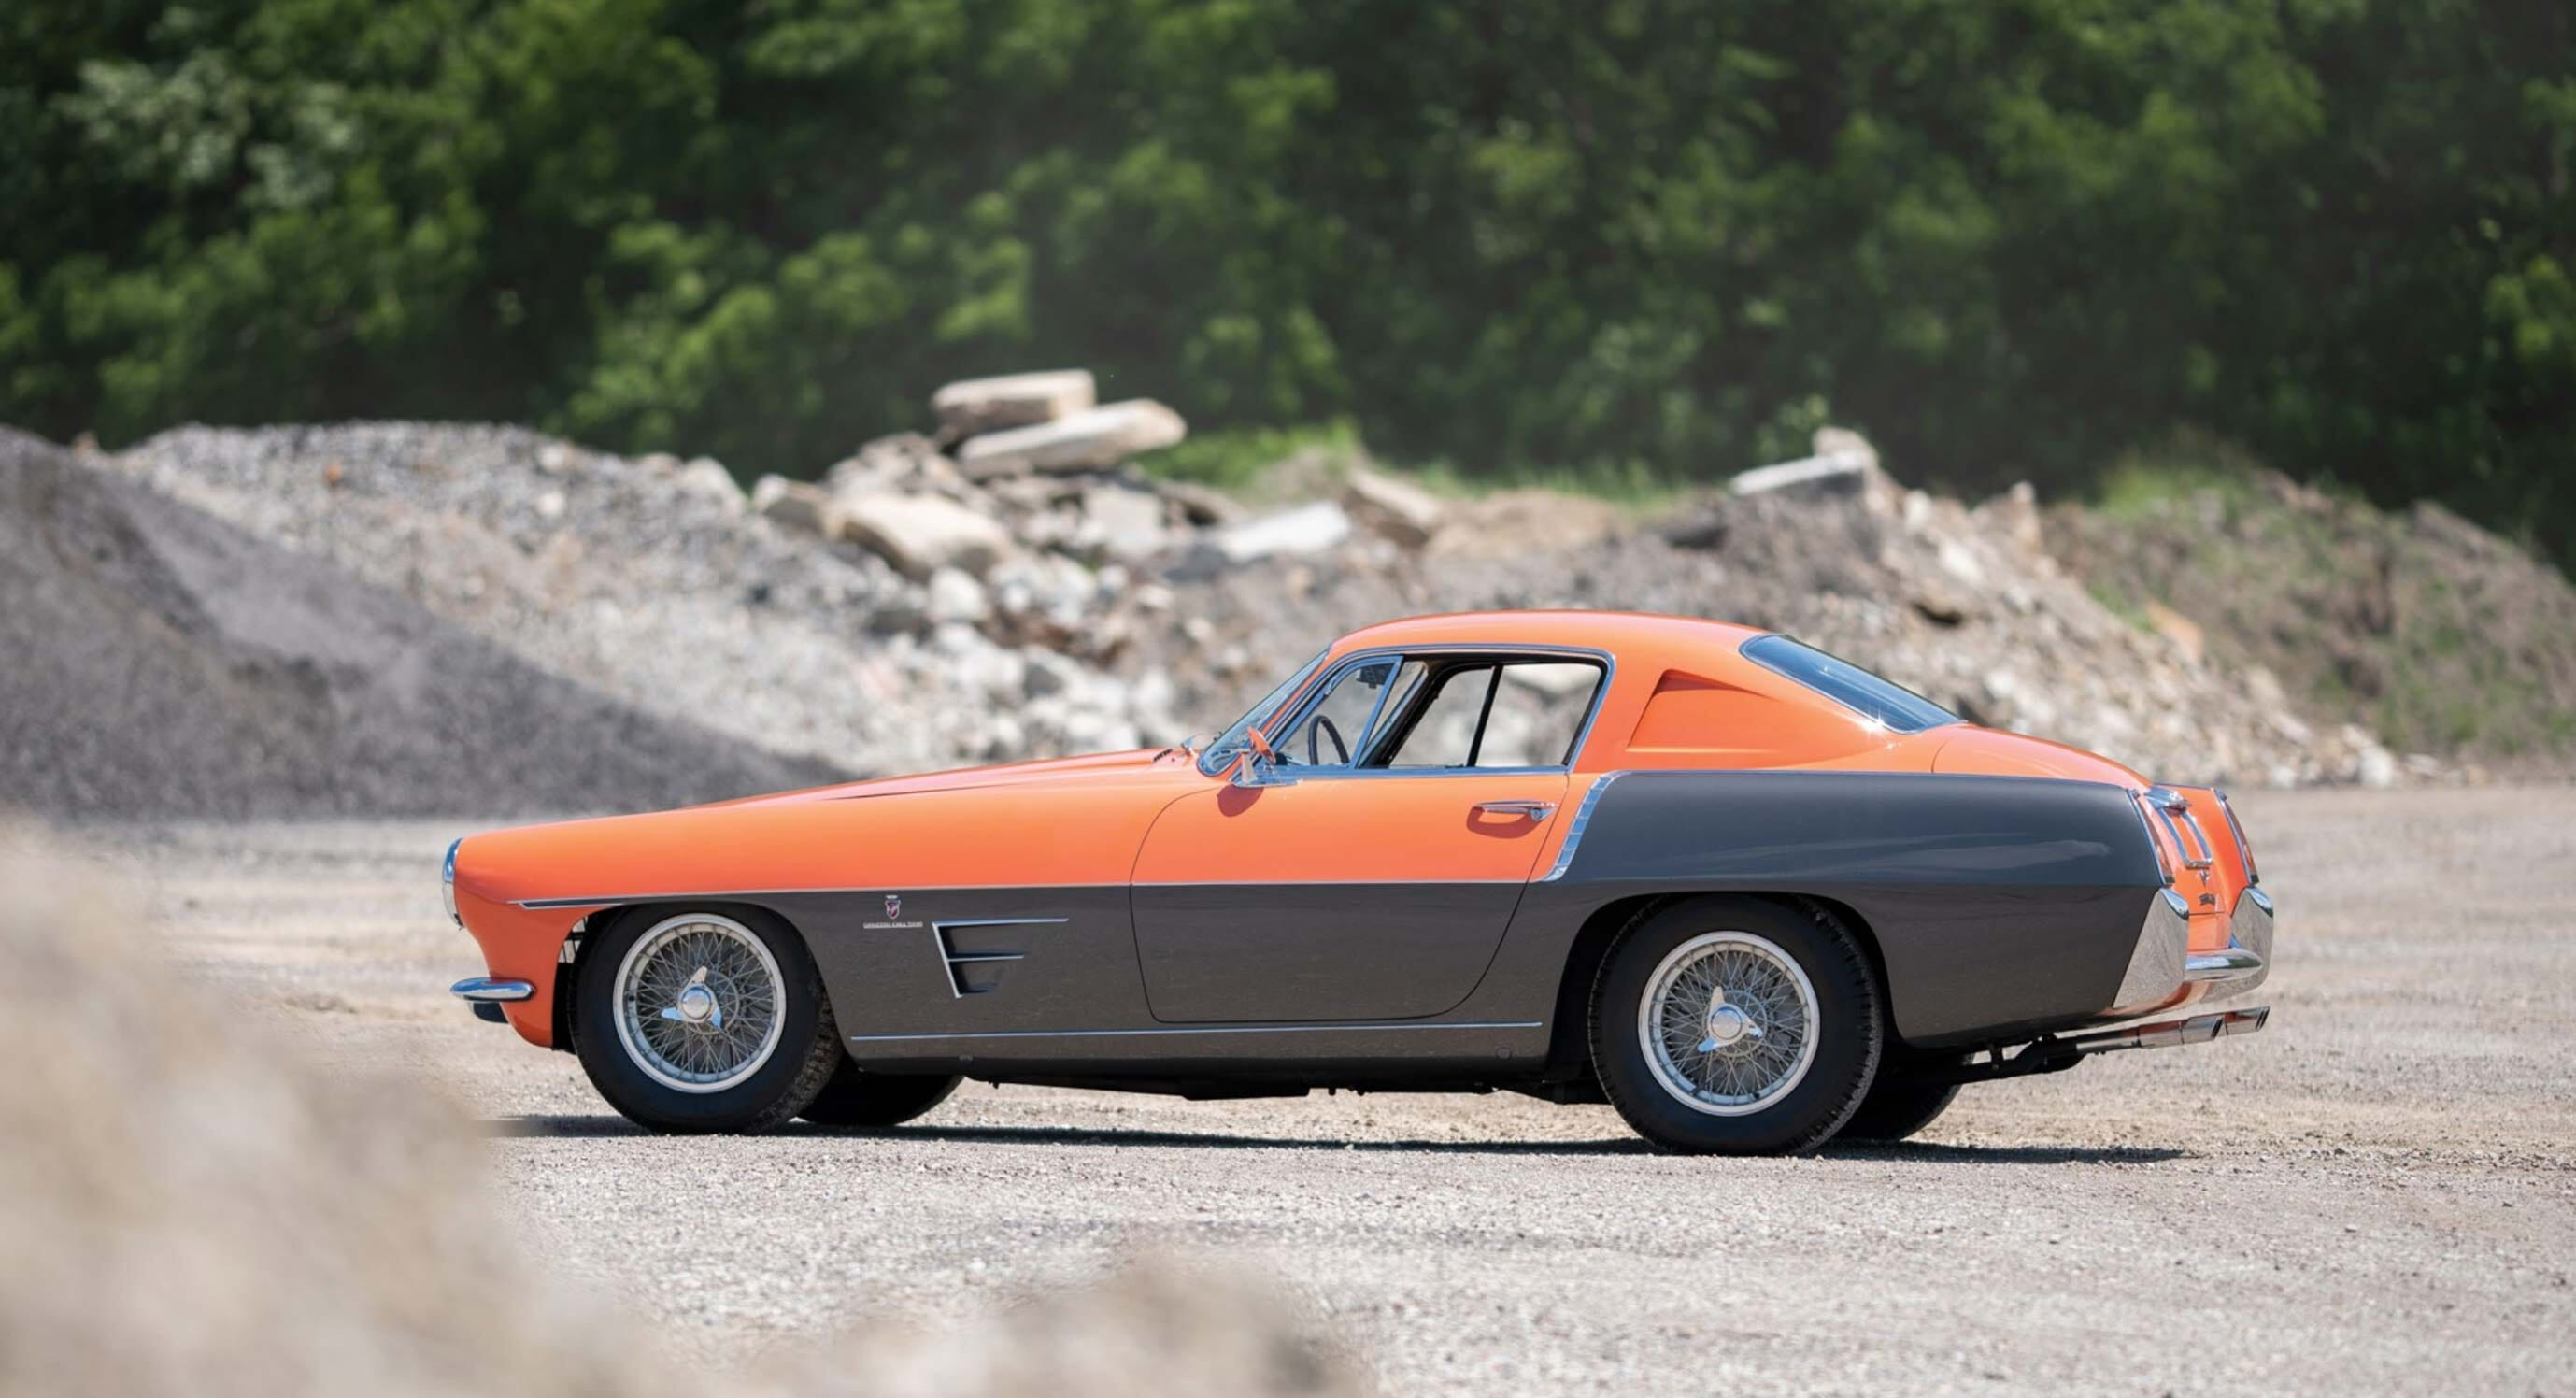 Classic Car Find Of The Week: 1955 Ferrari 375 MM Coupe Speciale